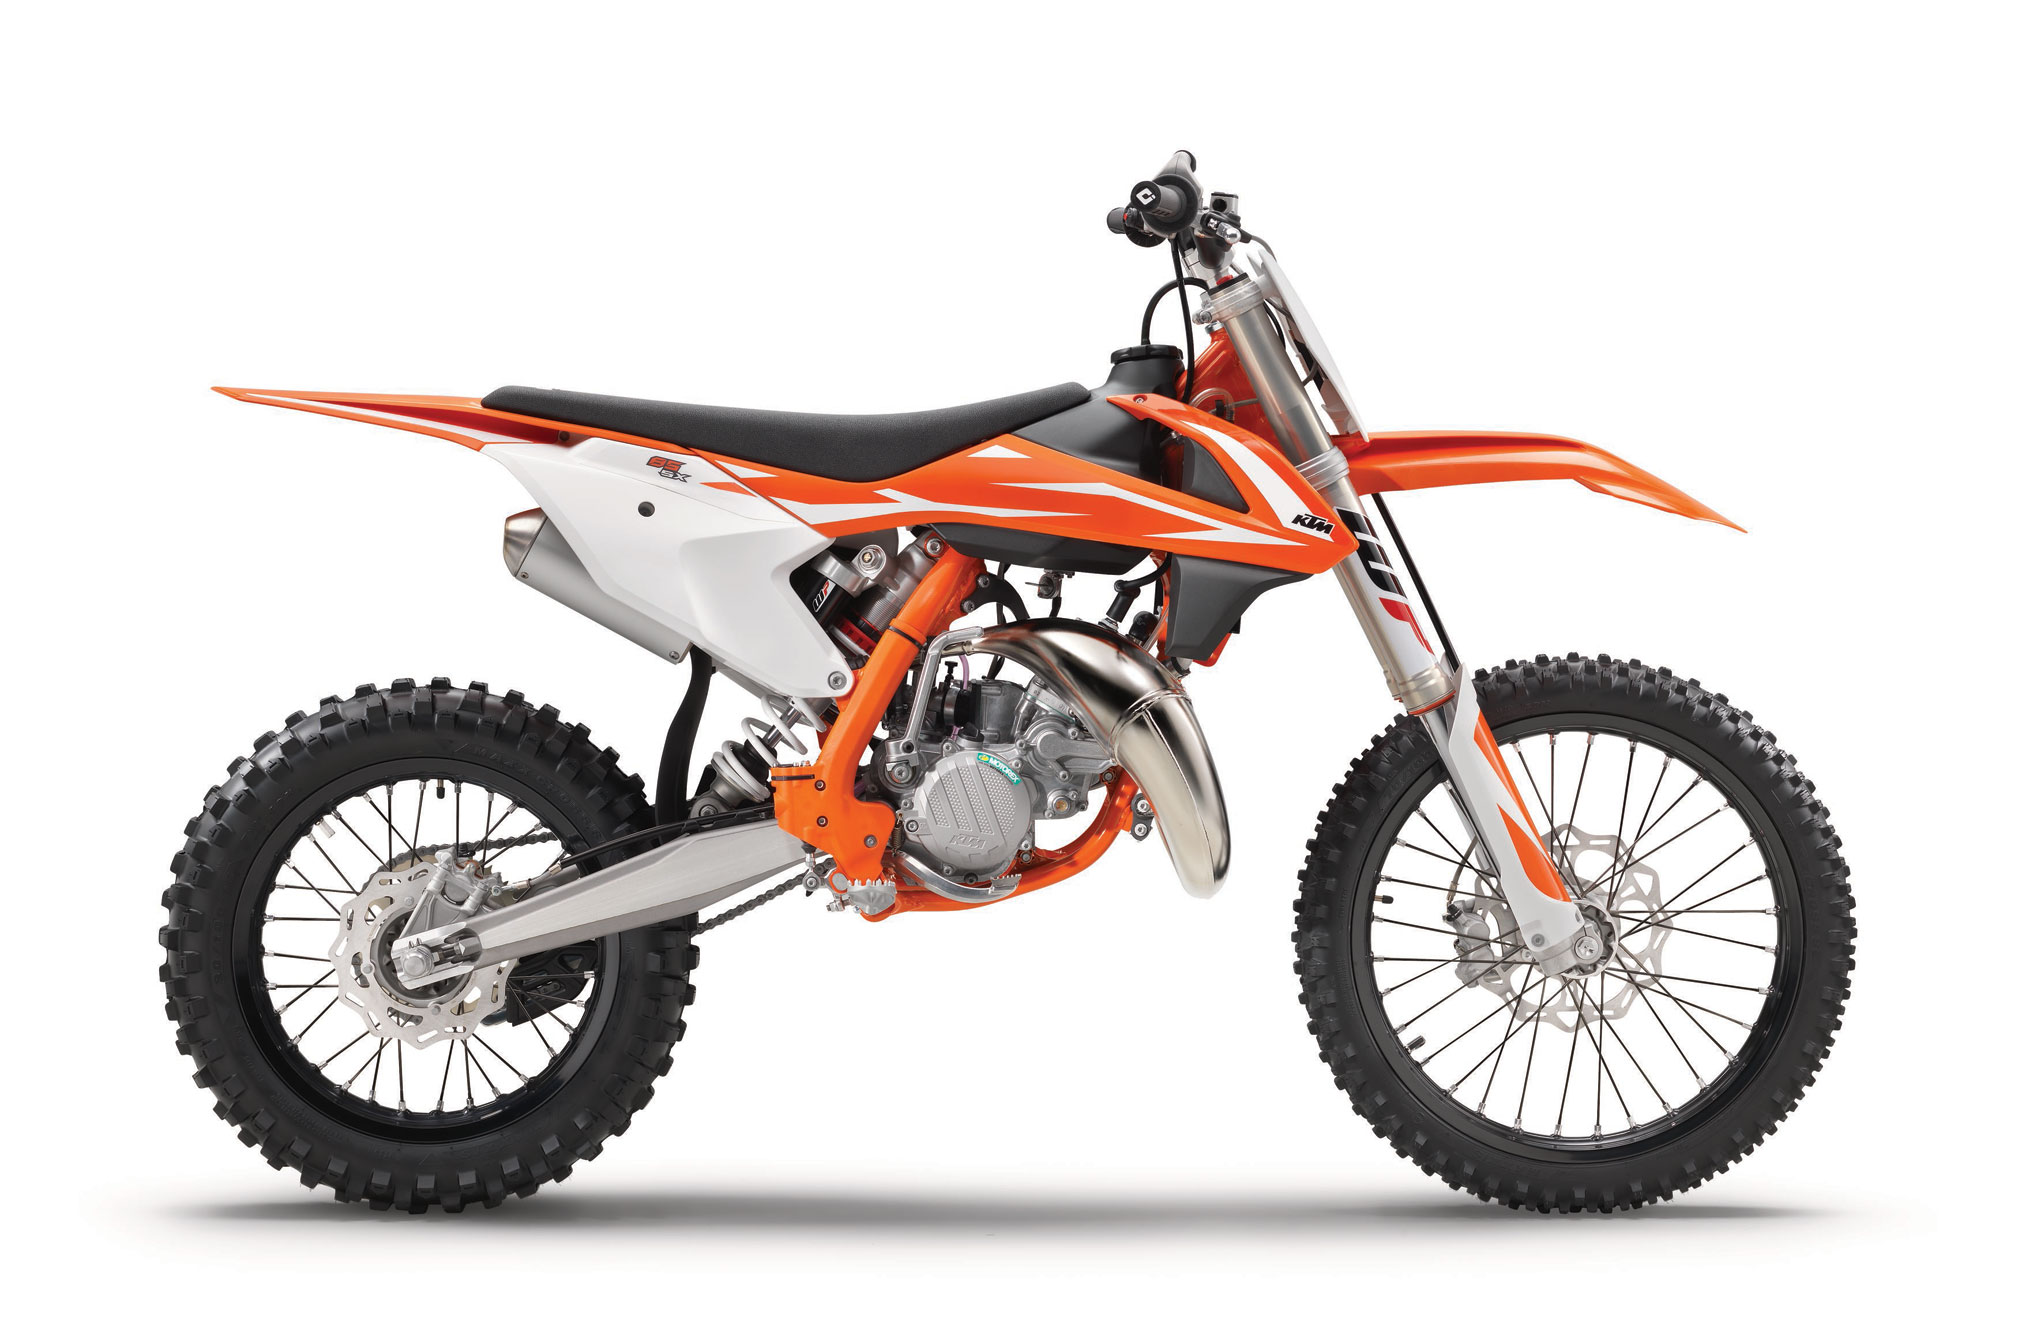 2018 Ktm 85 Sx 17 14 Review Totalmotorcycle